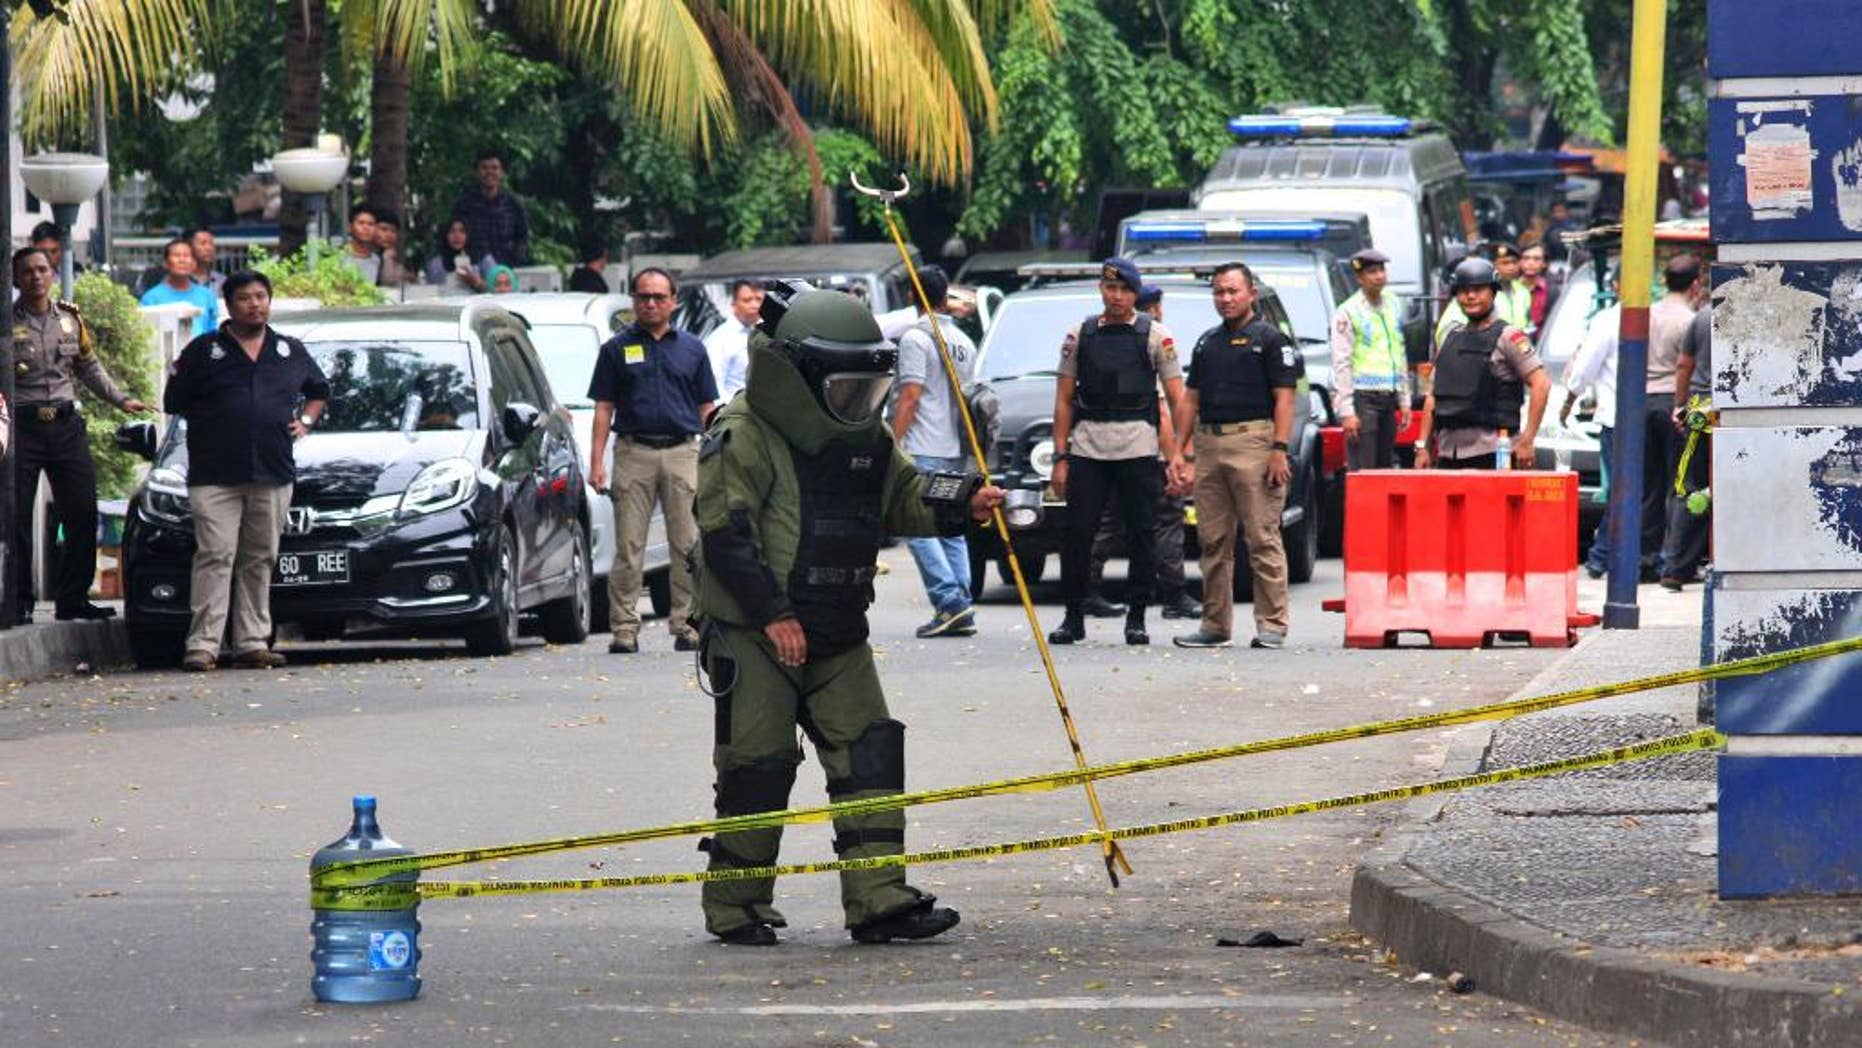 A member of police bomb squad inspects the site where police officers were attacked earlier, in Tangerang, Indonesia, Thursday, Oct. 20, 2016. A man with an Islamic State group symbol was shot Thursday after attacking the officers with a machete, police said. (AP Photo)